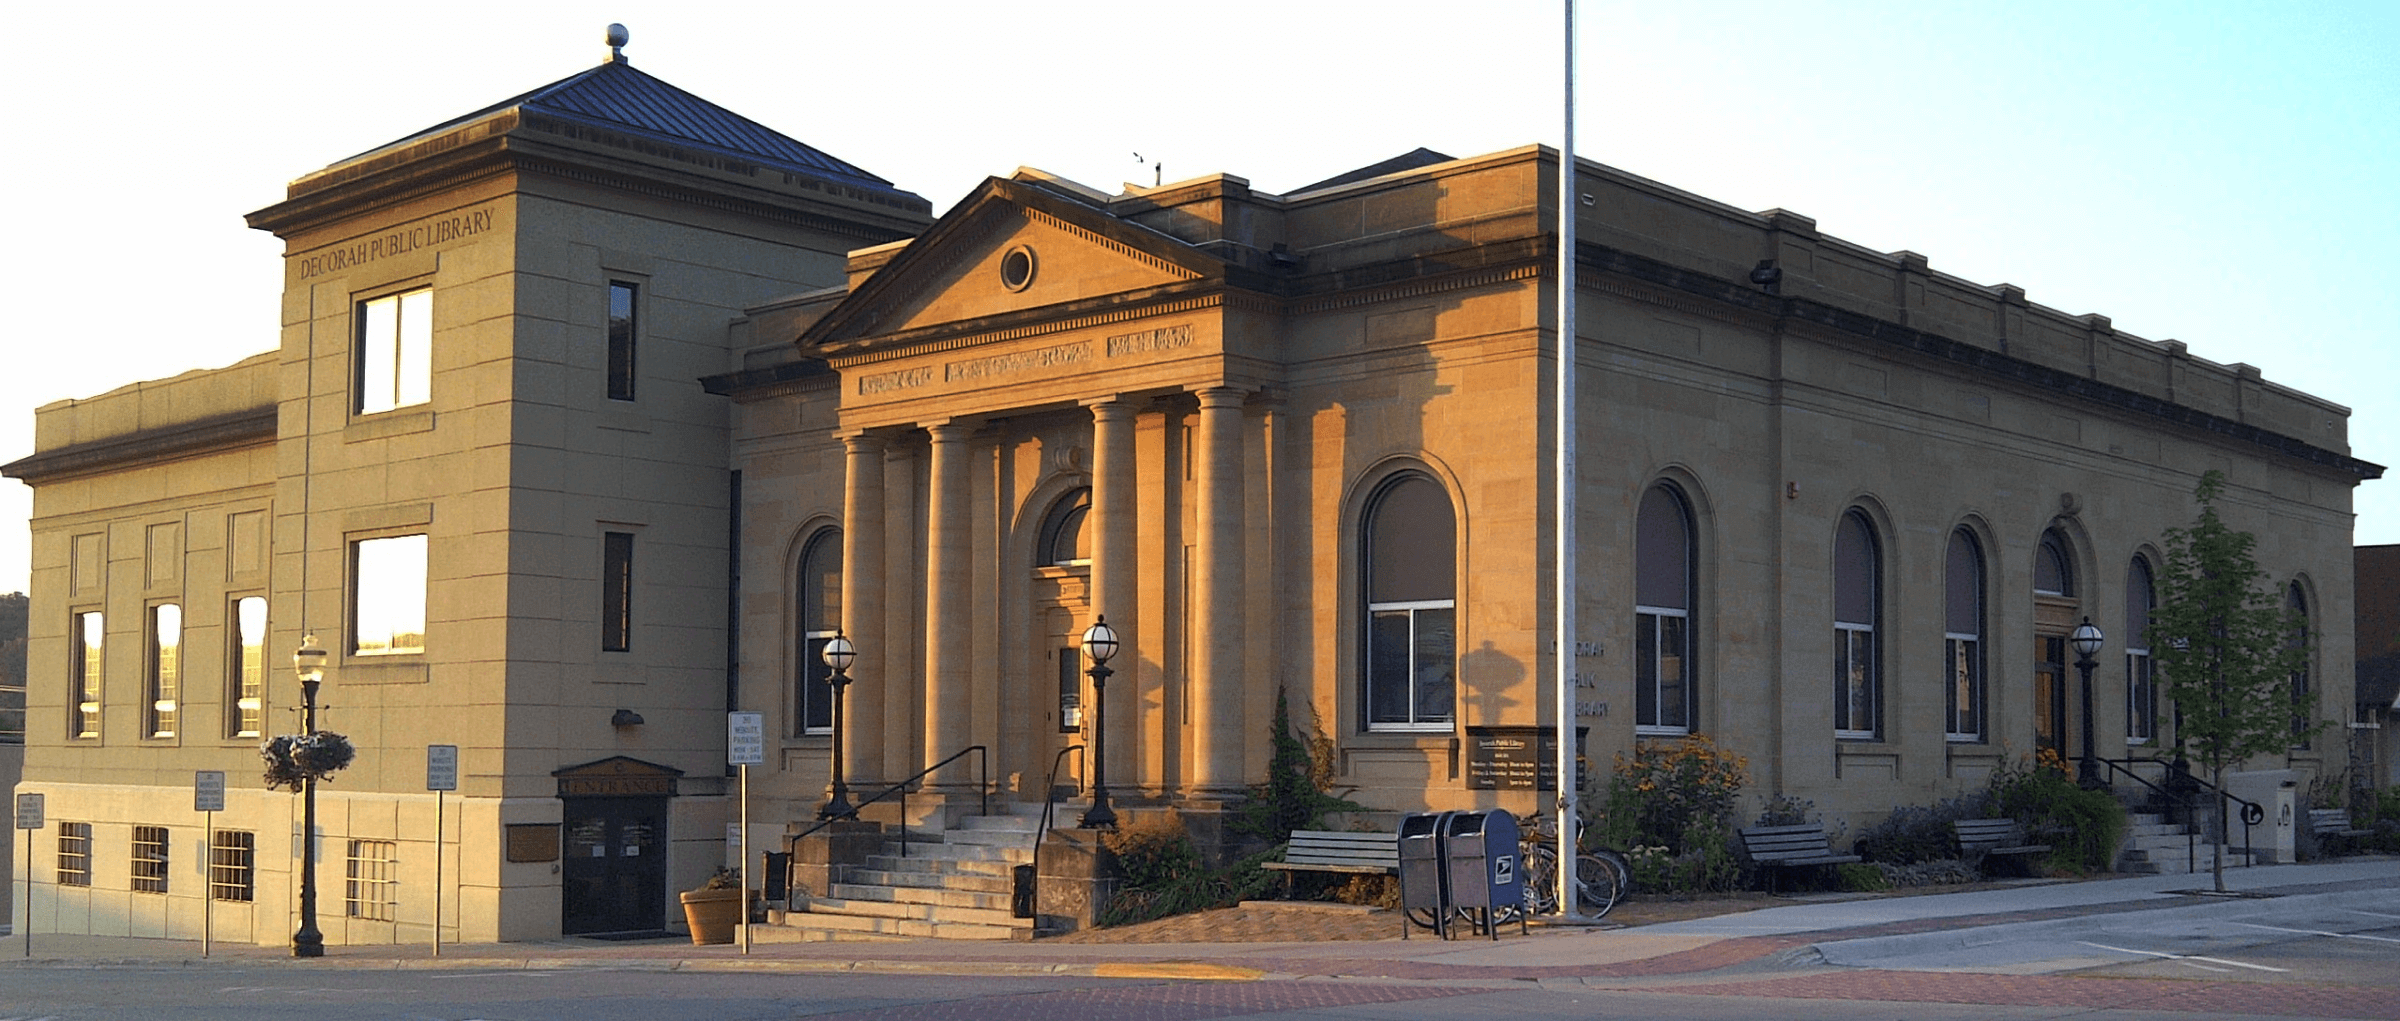 Decorah Public Library Building Exterior